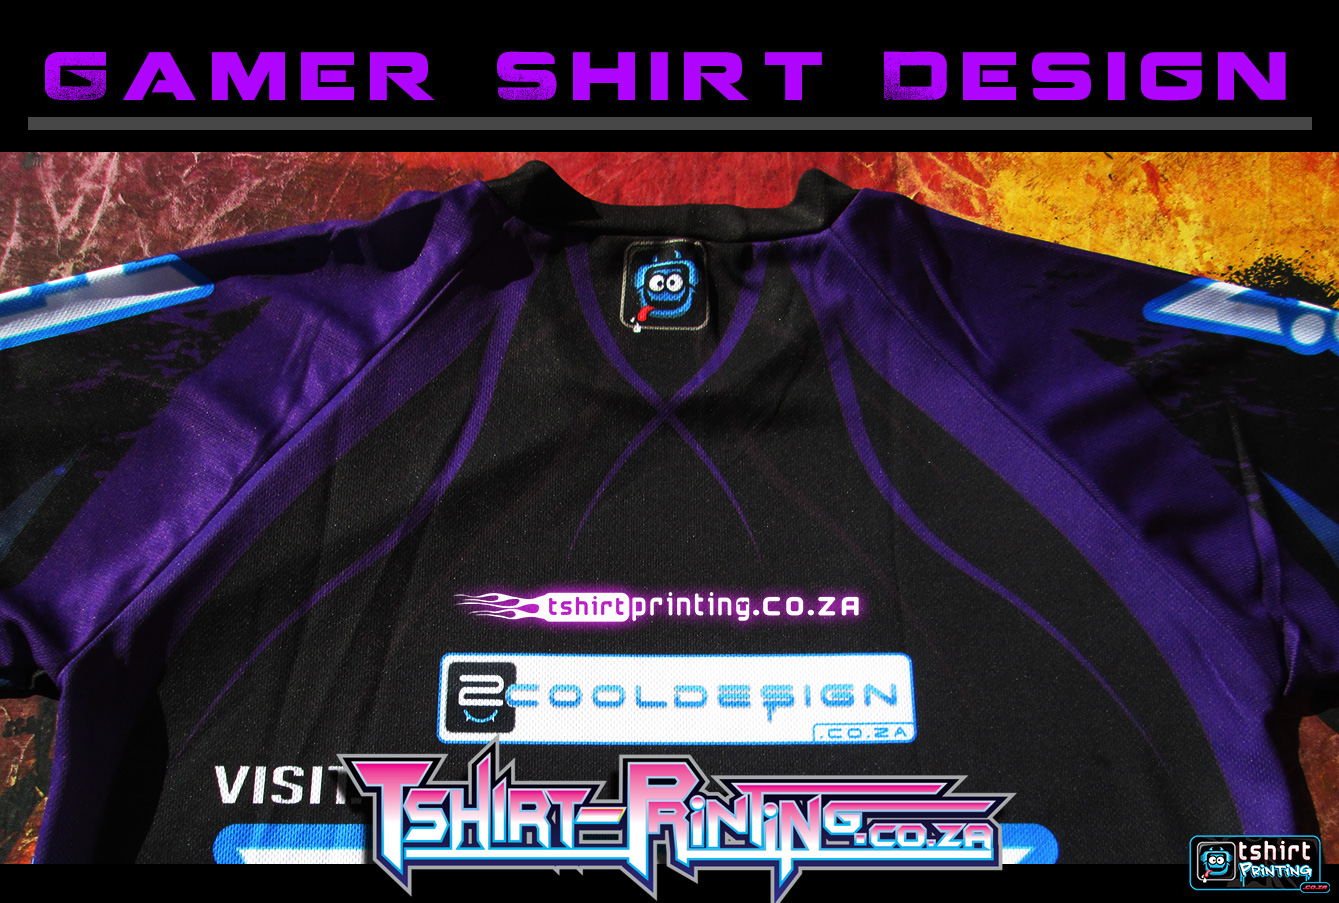 tbiz.co.za-2cooldesign.co.za-tshirtprinting.co.za-gamer-shirt-design